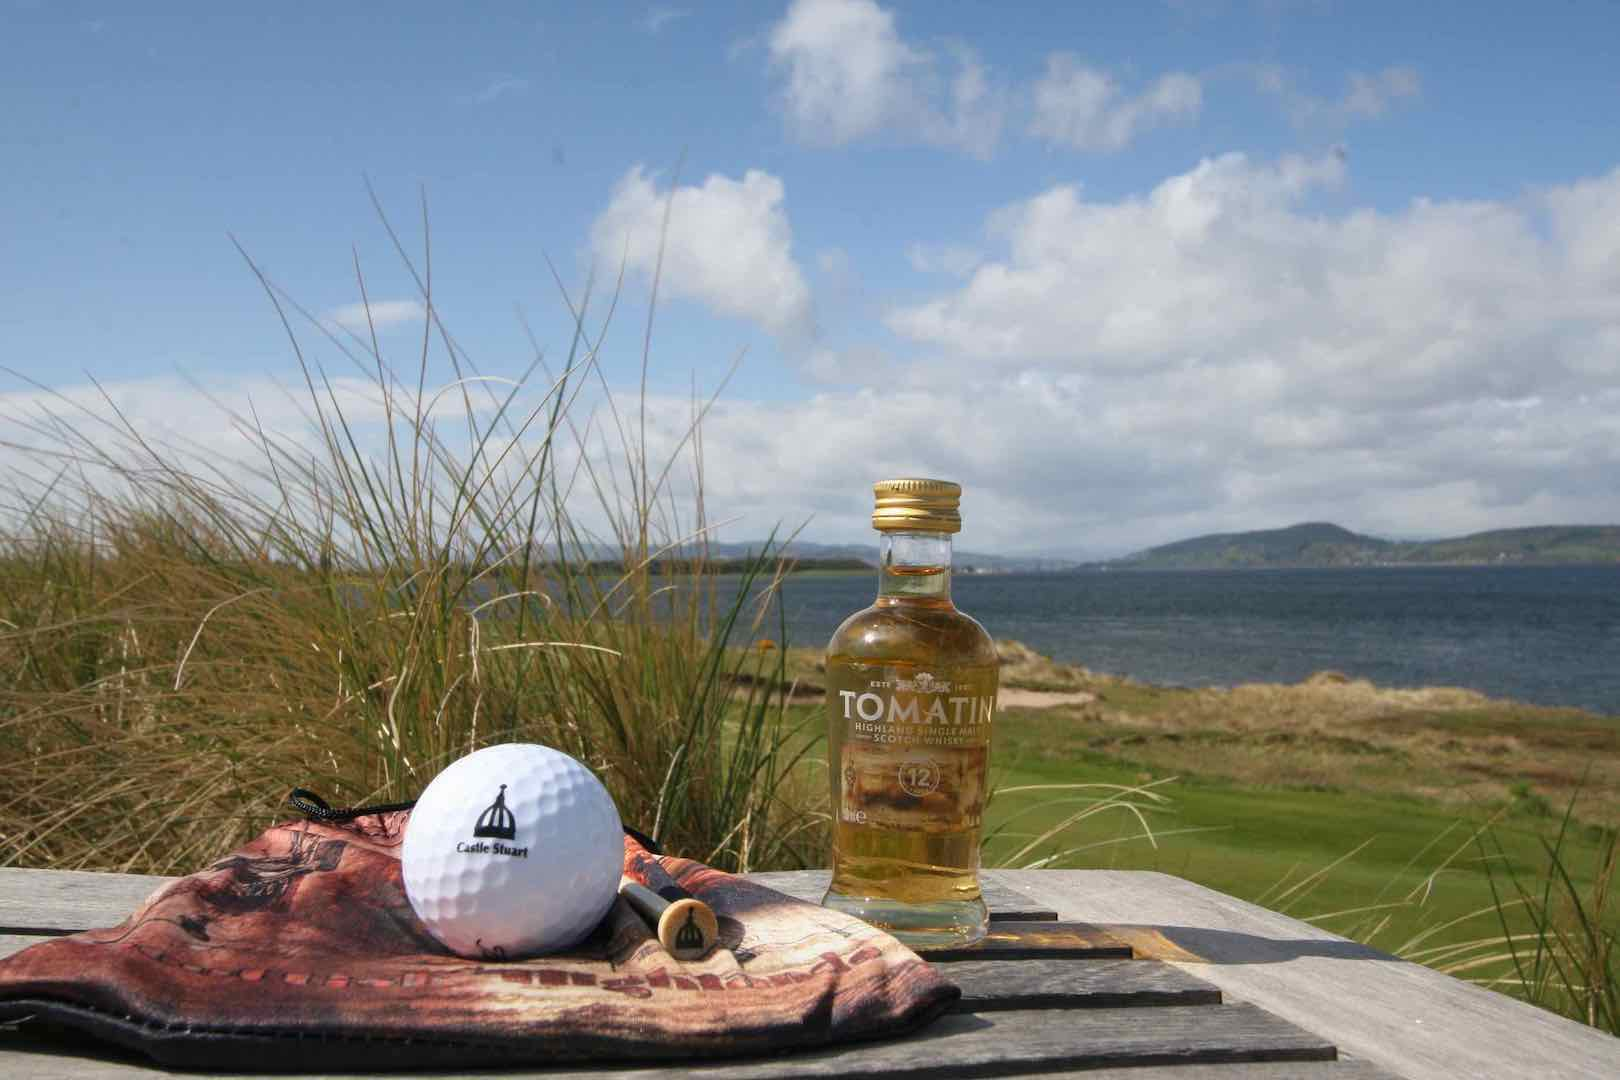 Castle Stuart and Tomatin produce winning shot